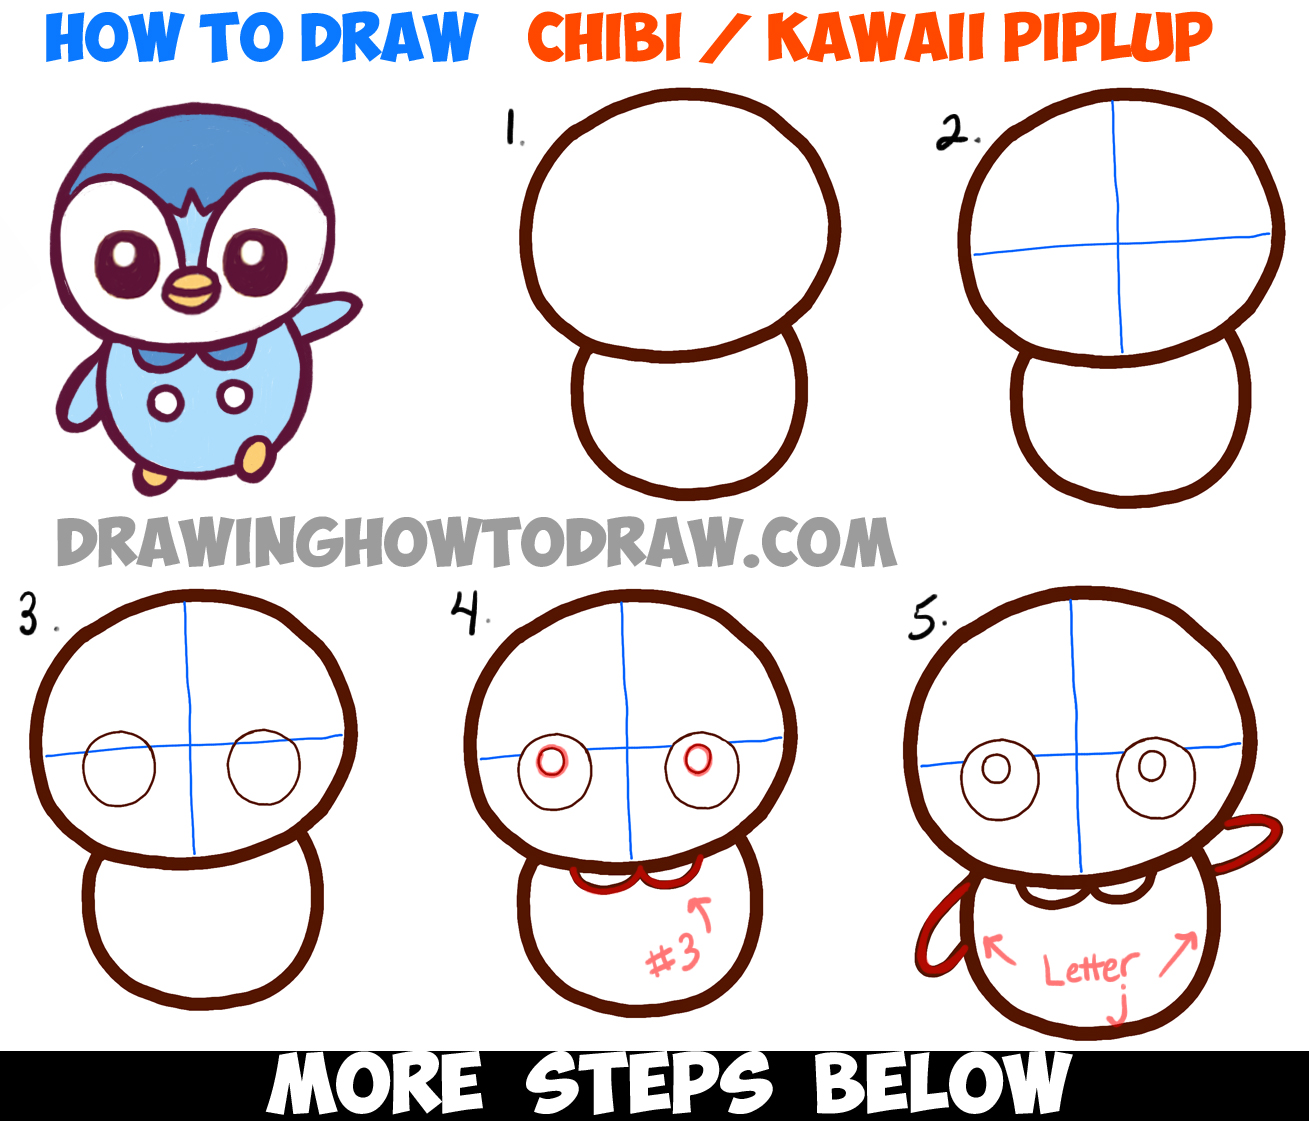 How to Draw Baby Chibi Kawaii Piplup from Pokemon Easy Step by Step Tutorial